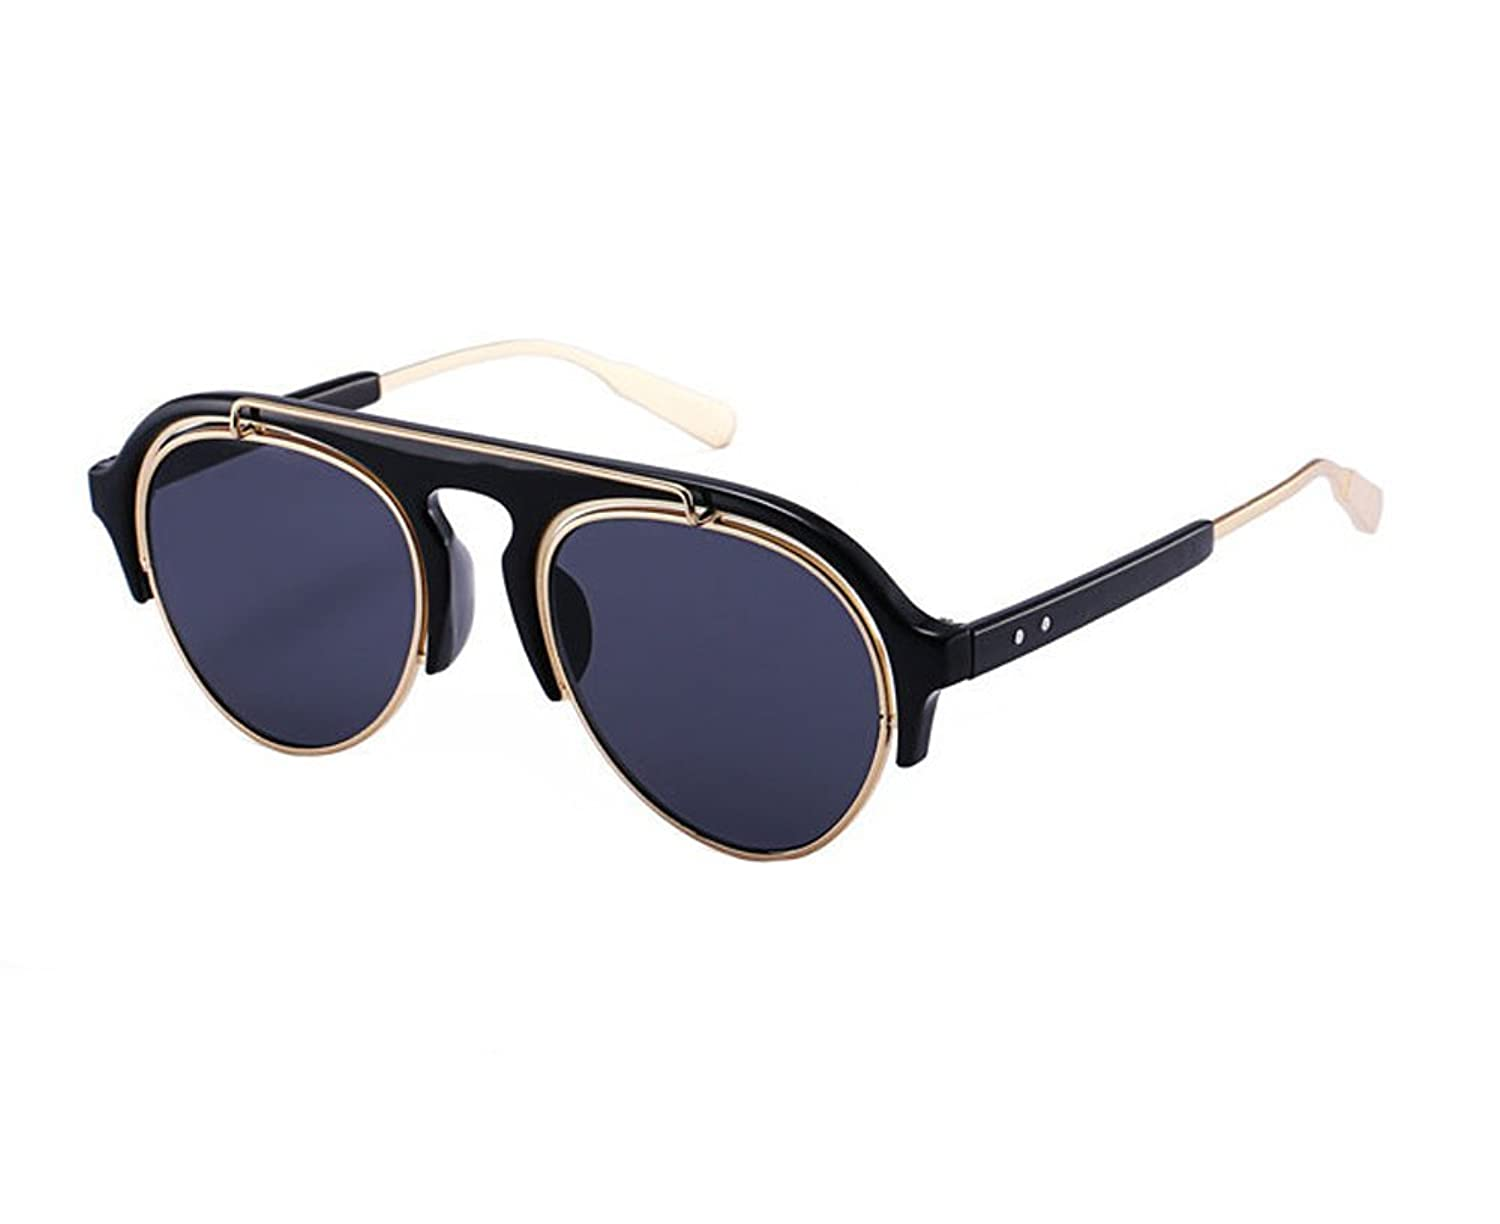 Colorful retro sunglasses metal sunglasses unisex